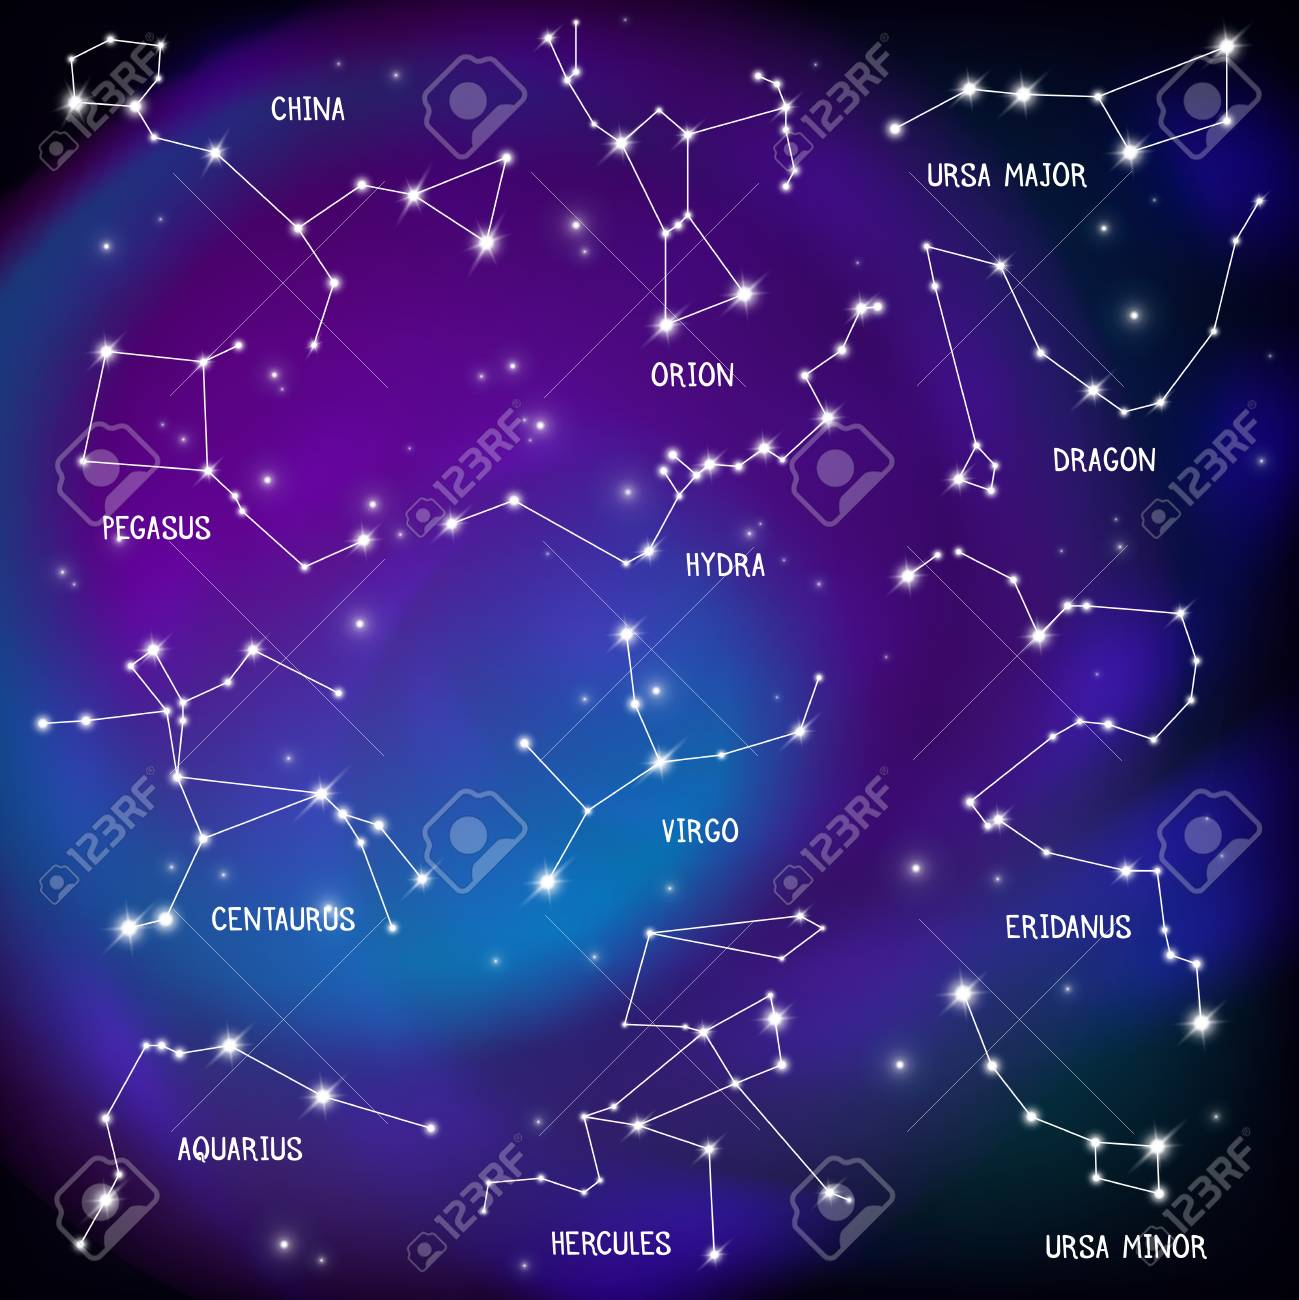 Astronomical celestial sphere constellations night sky stars map purple background scientific educational decorative poster print vector illustration - 113936766